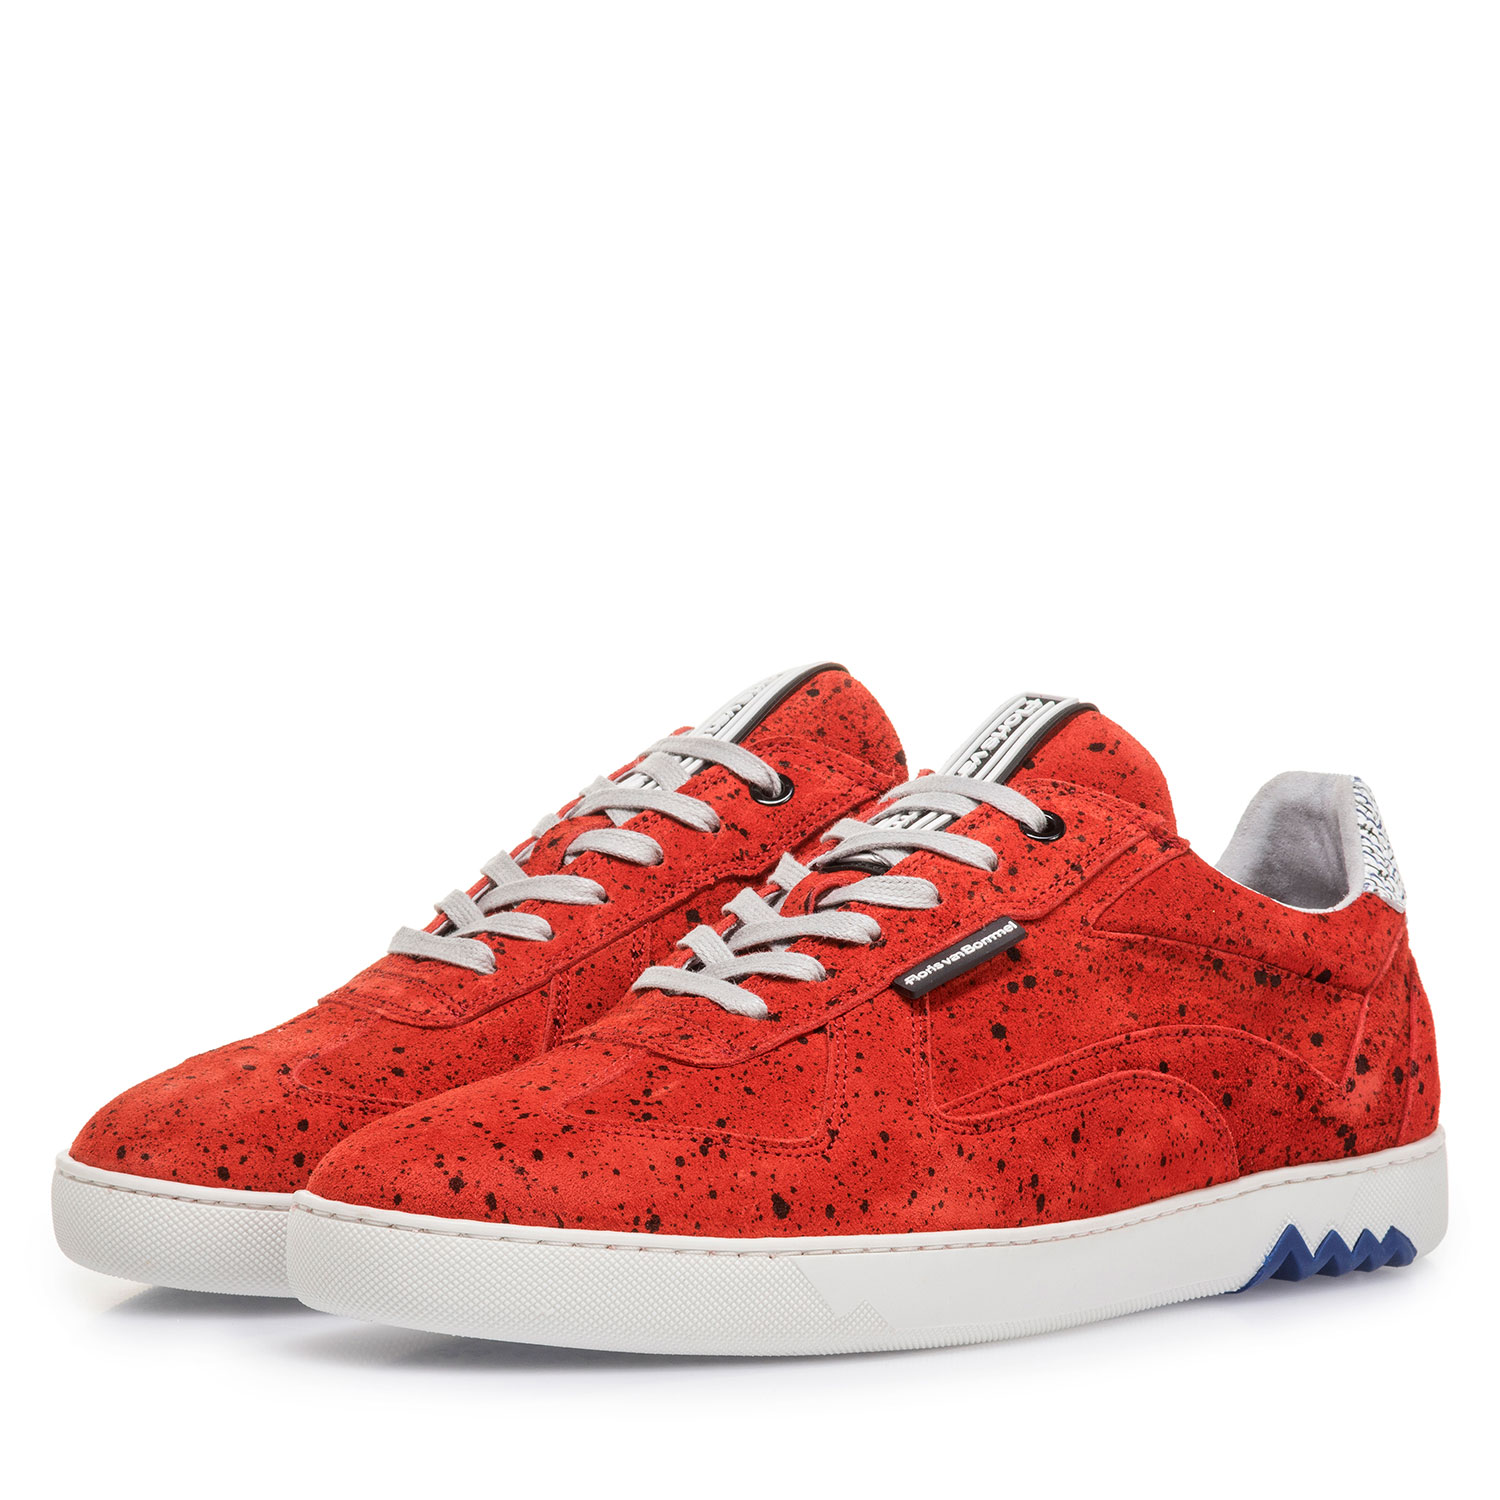 16342/21 - Red suede leather sneaker with black print